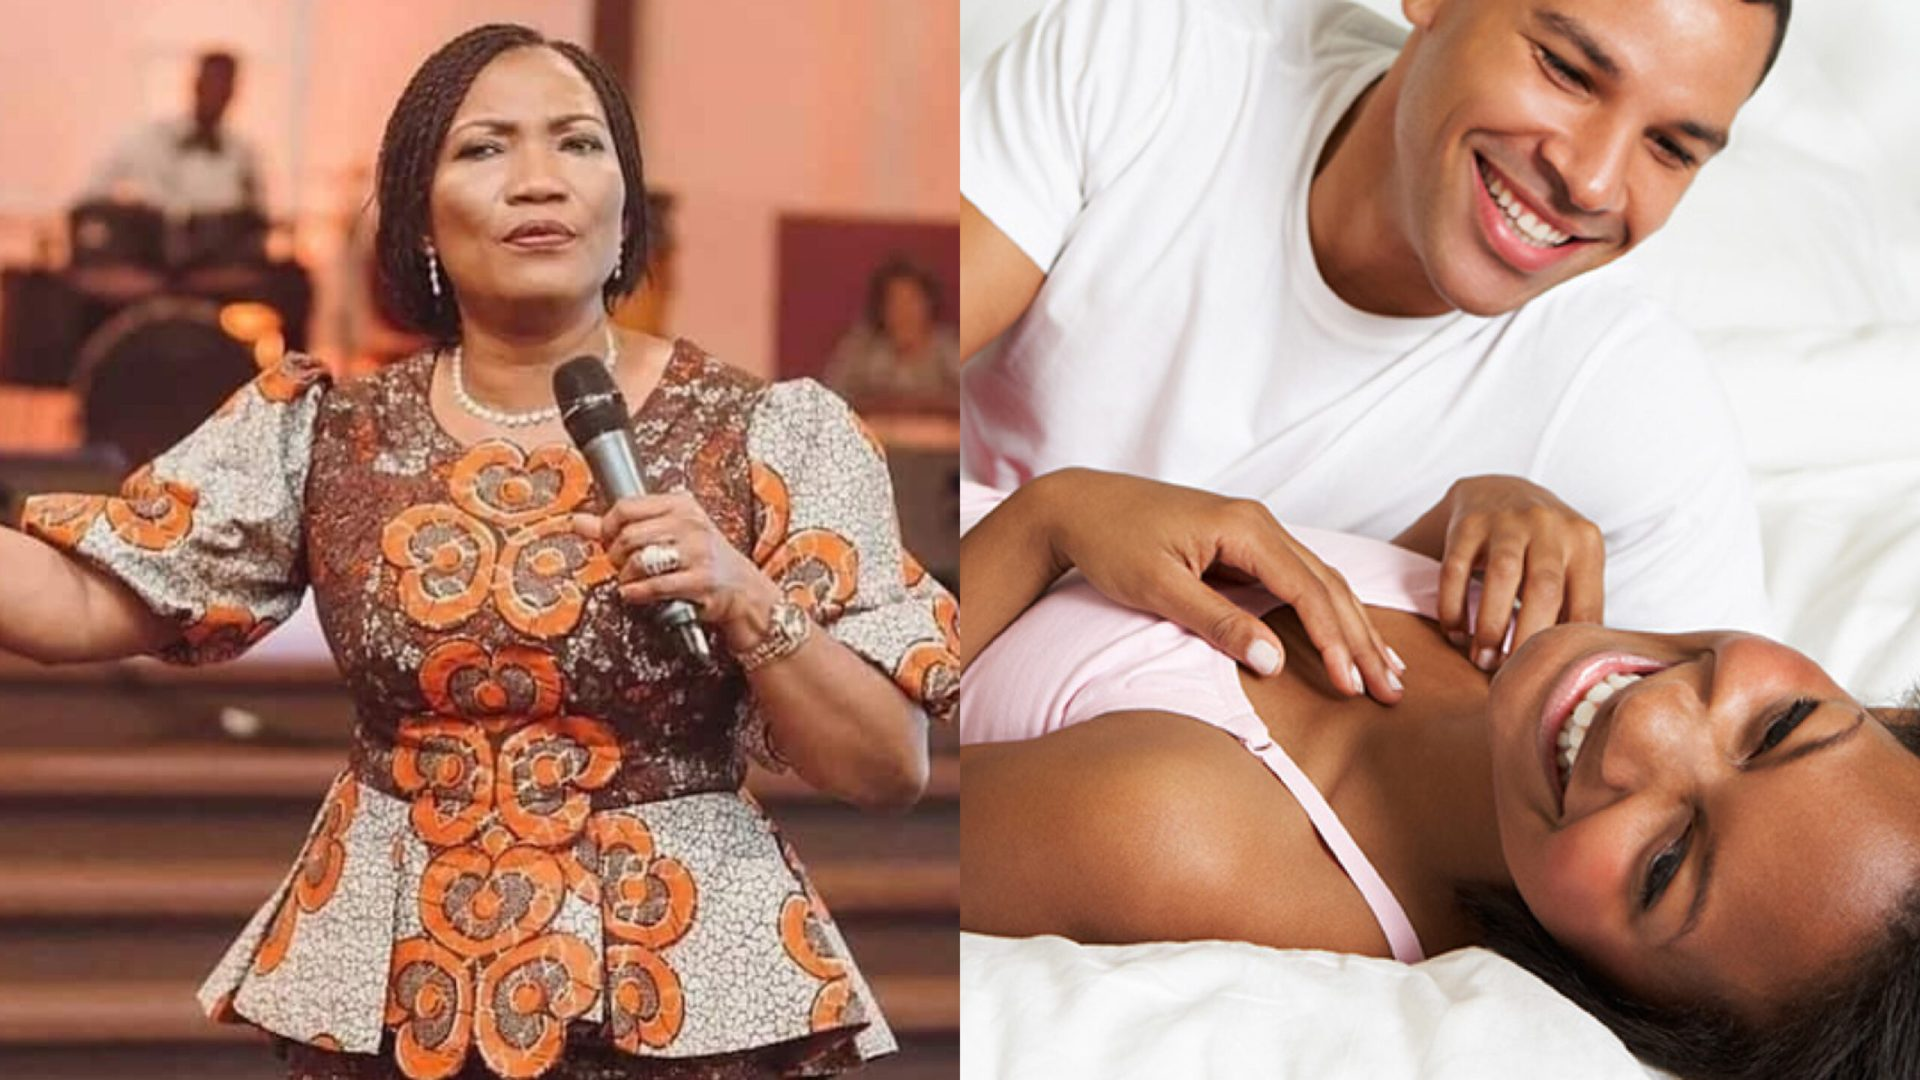 You need to thank your woman after s.ex because she gave out her body to you – Female preacher tells men in video